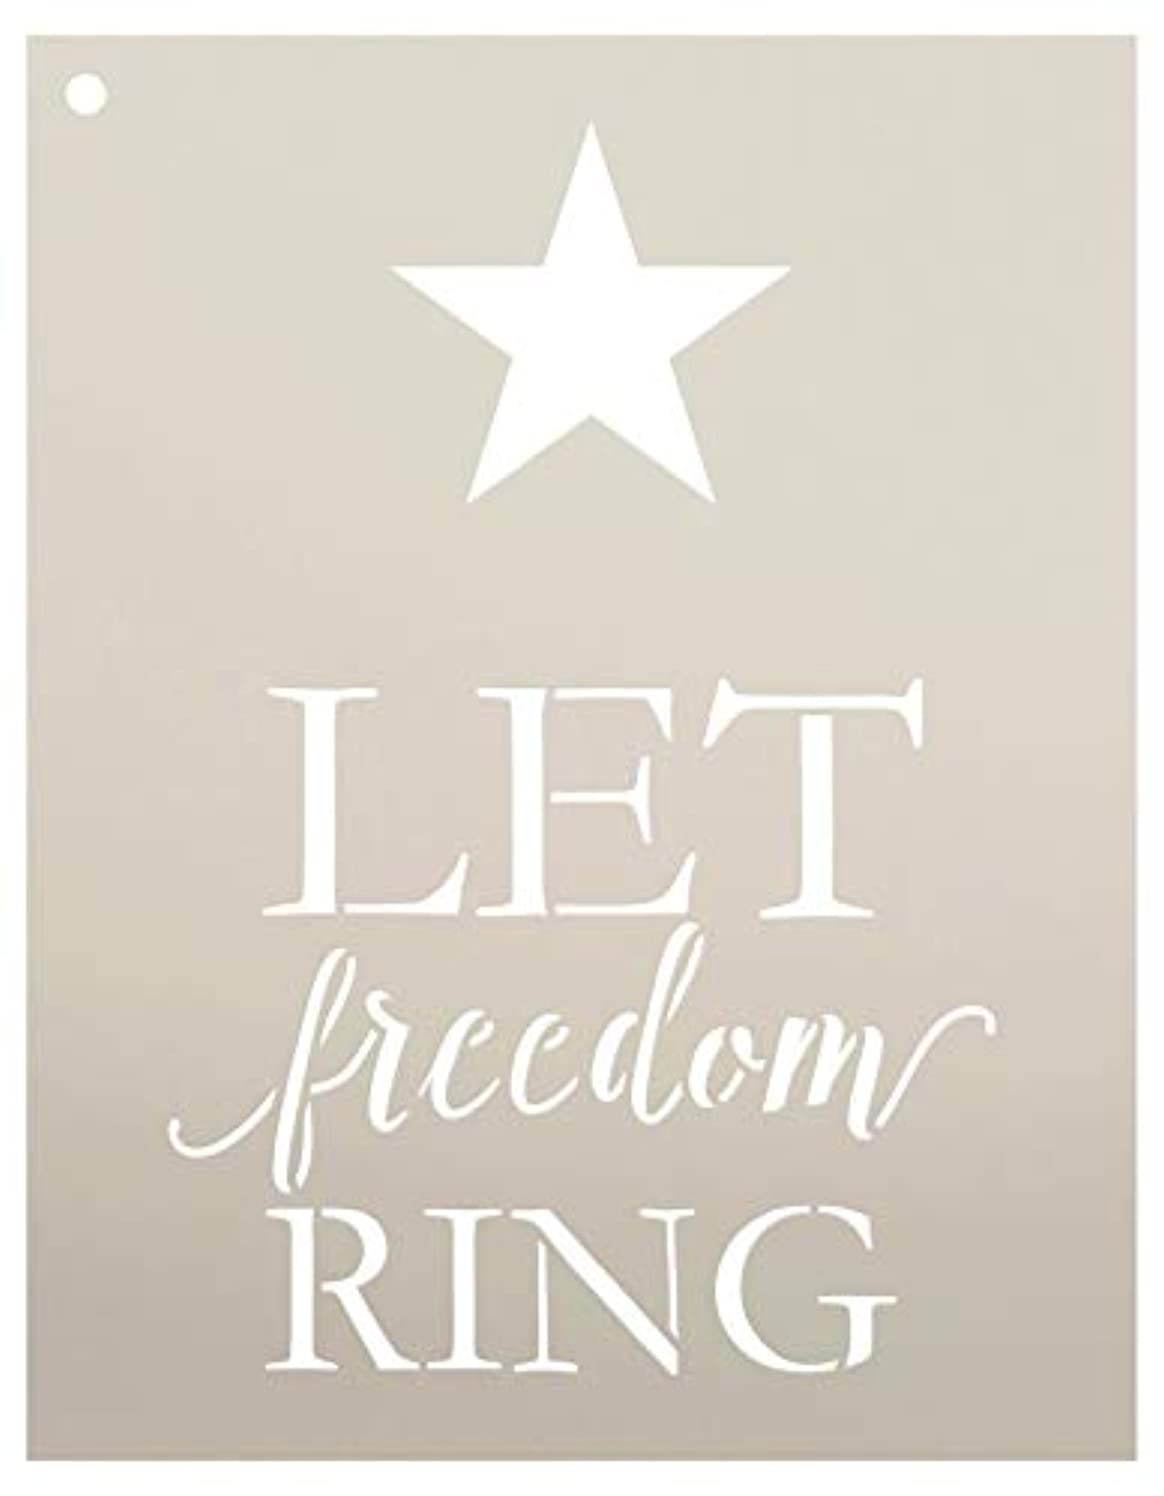 Let Freedom Ring with Star Stencil by StudioR12 | Reusable Mylar Template | Use to Paint Wood Signs - Pallets - Pillows - DIY Patriotic Decor - Select Size (9